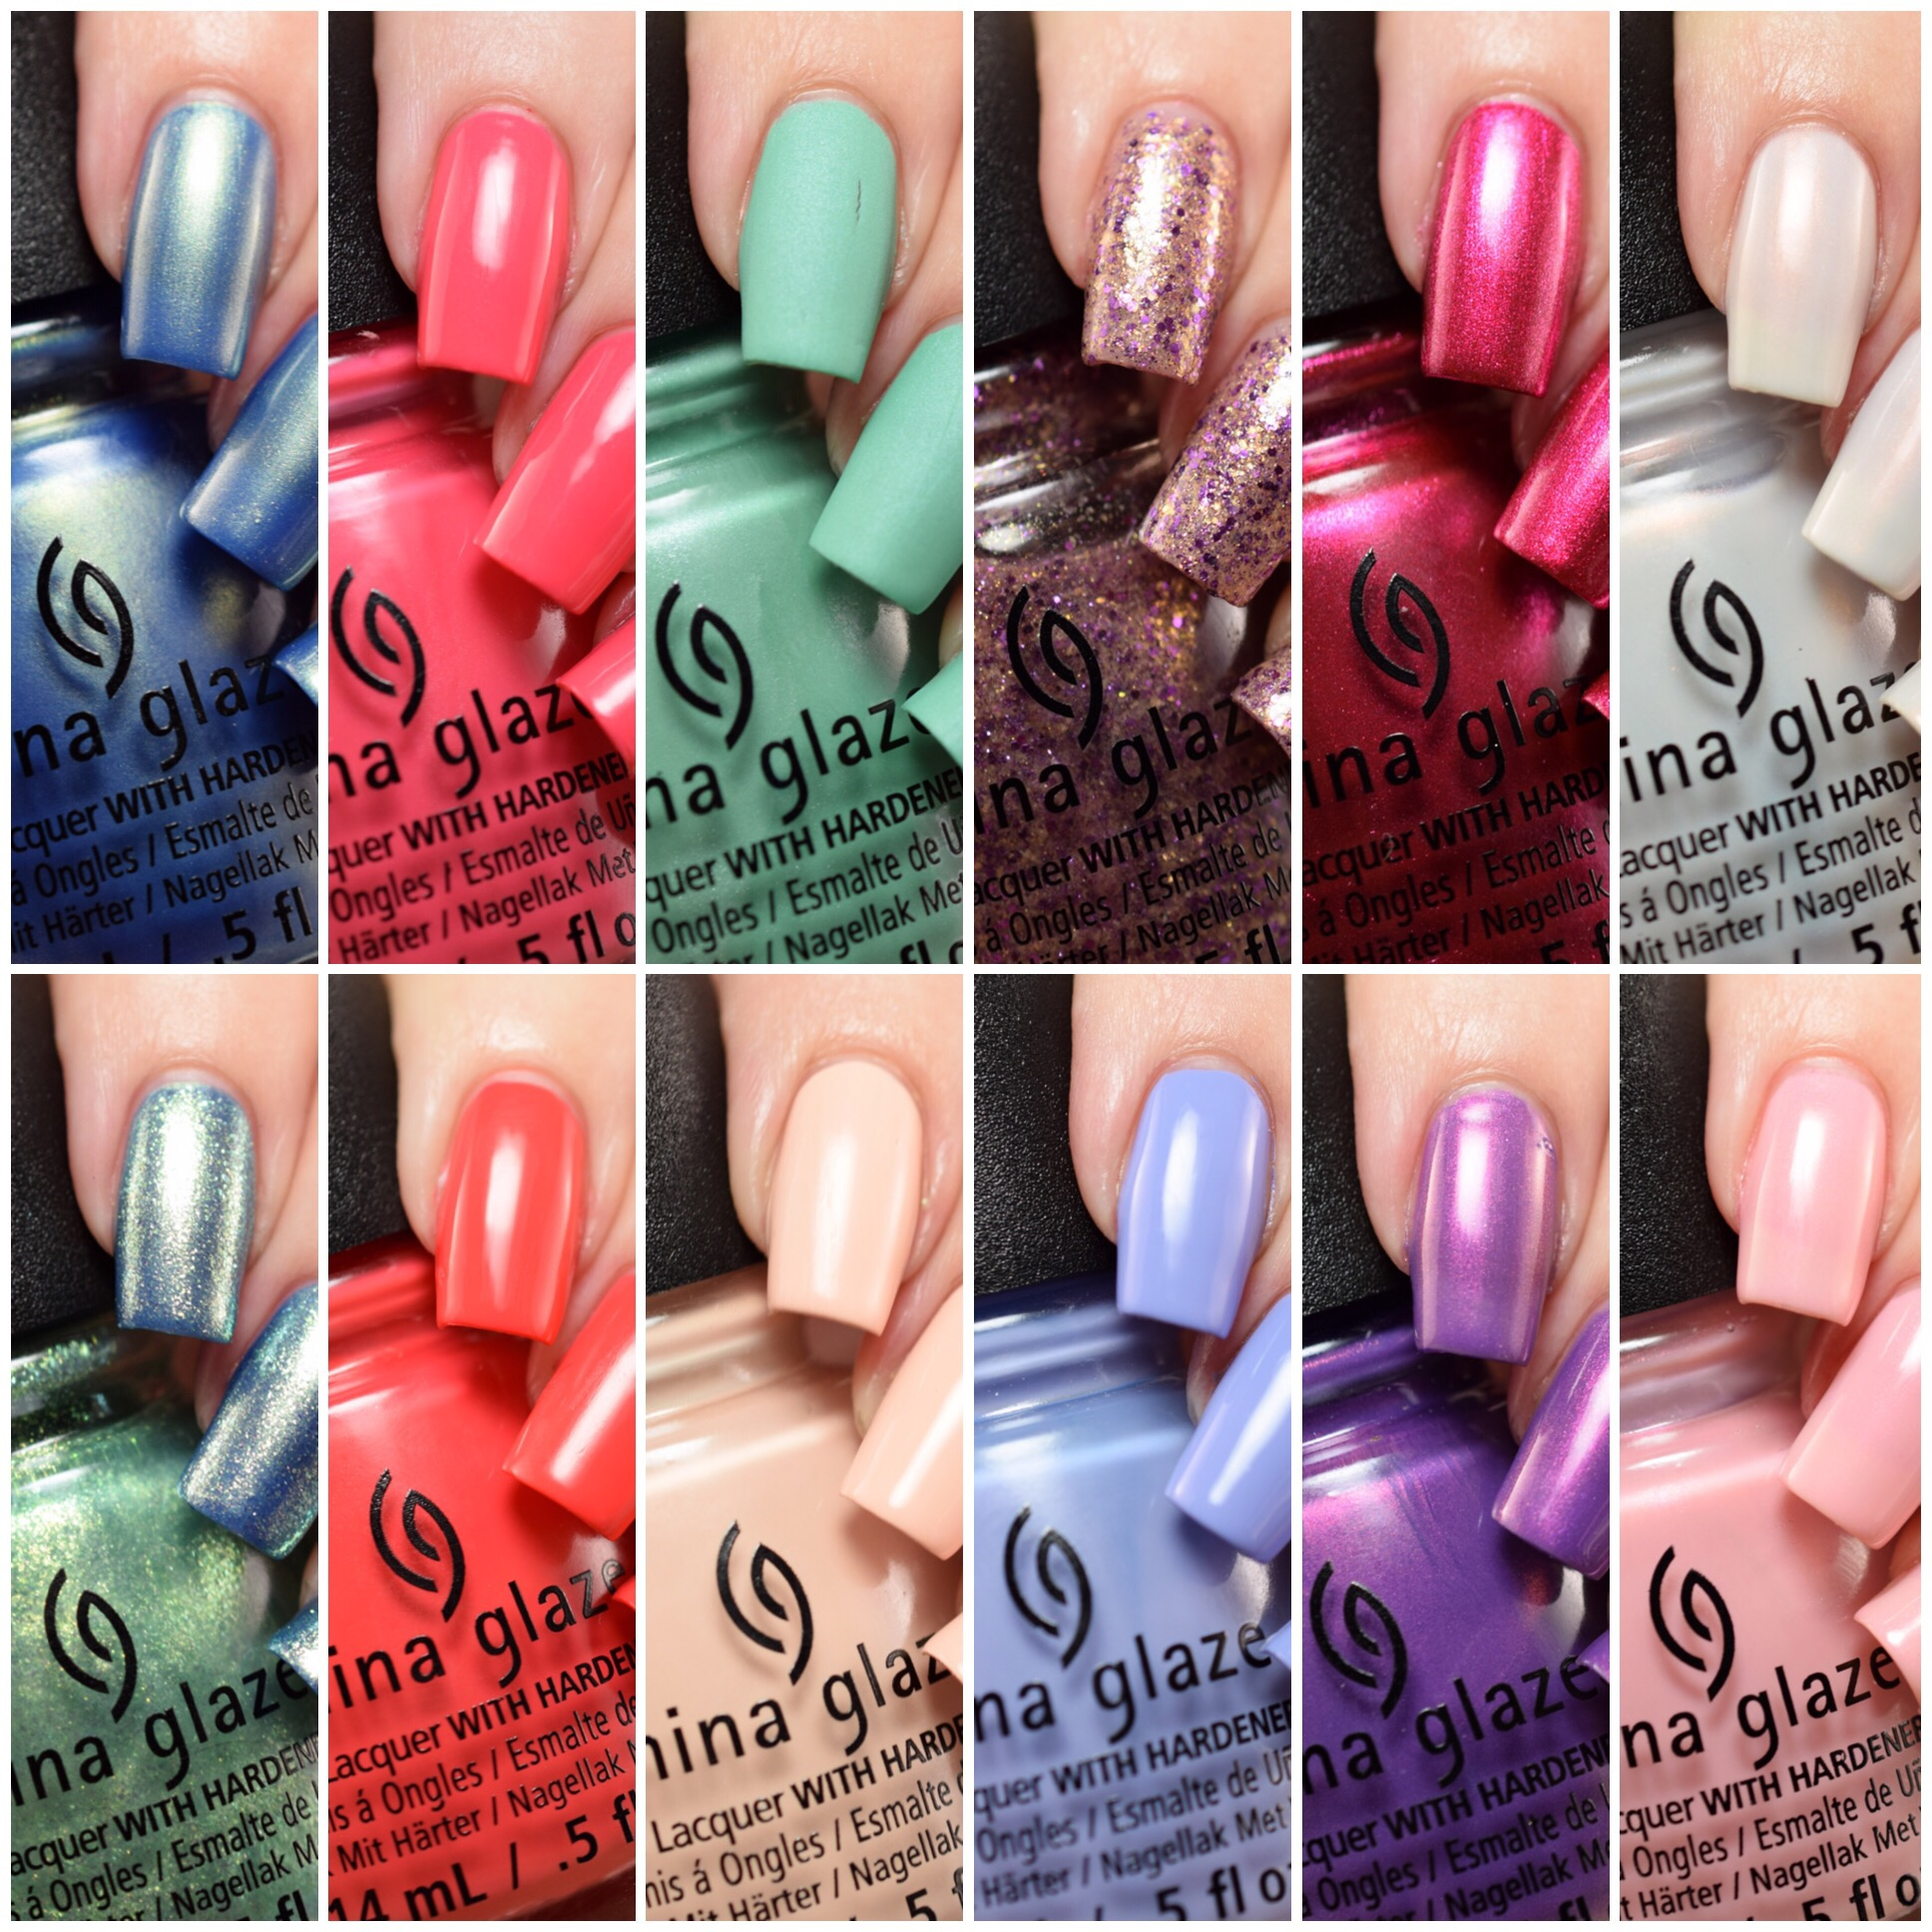 China glaze seas and greetings collection holiday 2016 polish in fact they went so far outside the box that they ended up on the beach celebrating seas and greetings lets take a look china glaze m4hsunfo